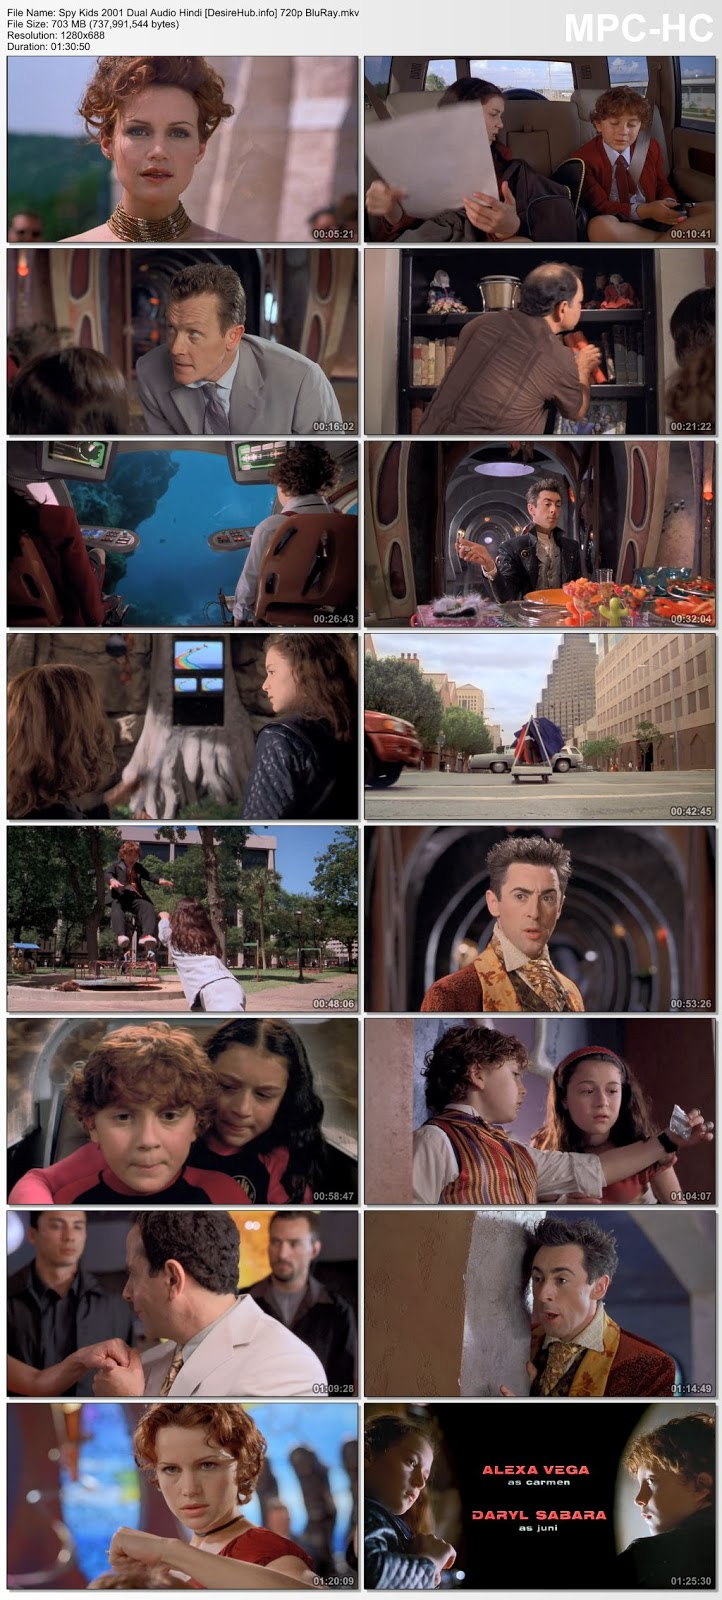 Spy Kids 2001 Dual Audio Hindi 720p BluRay 700MB Desirehub